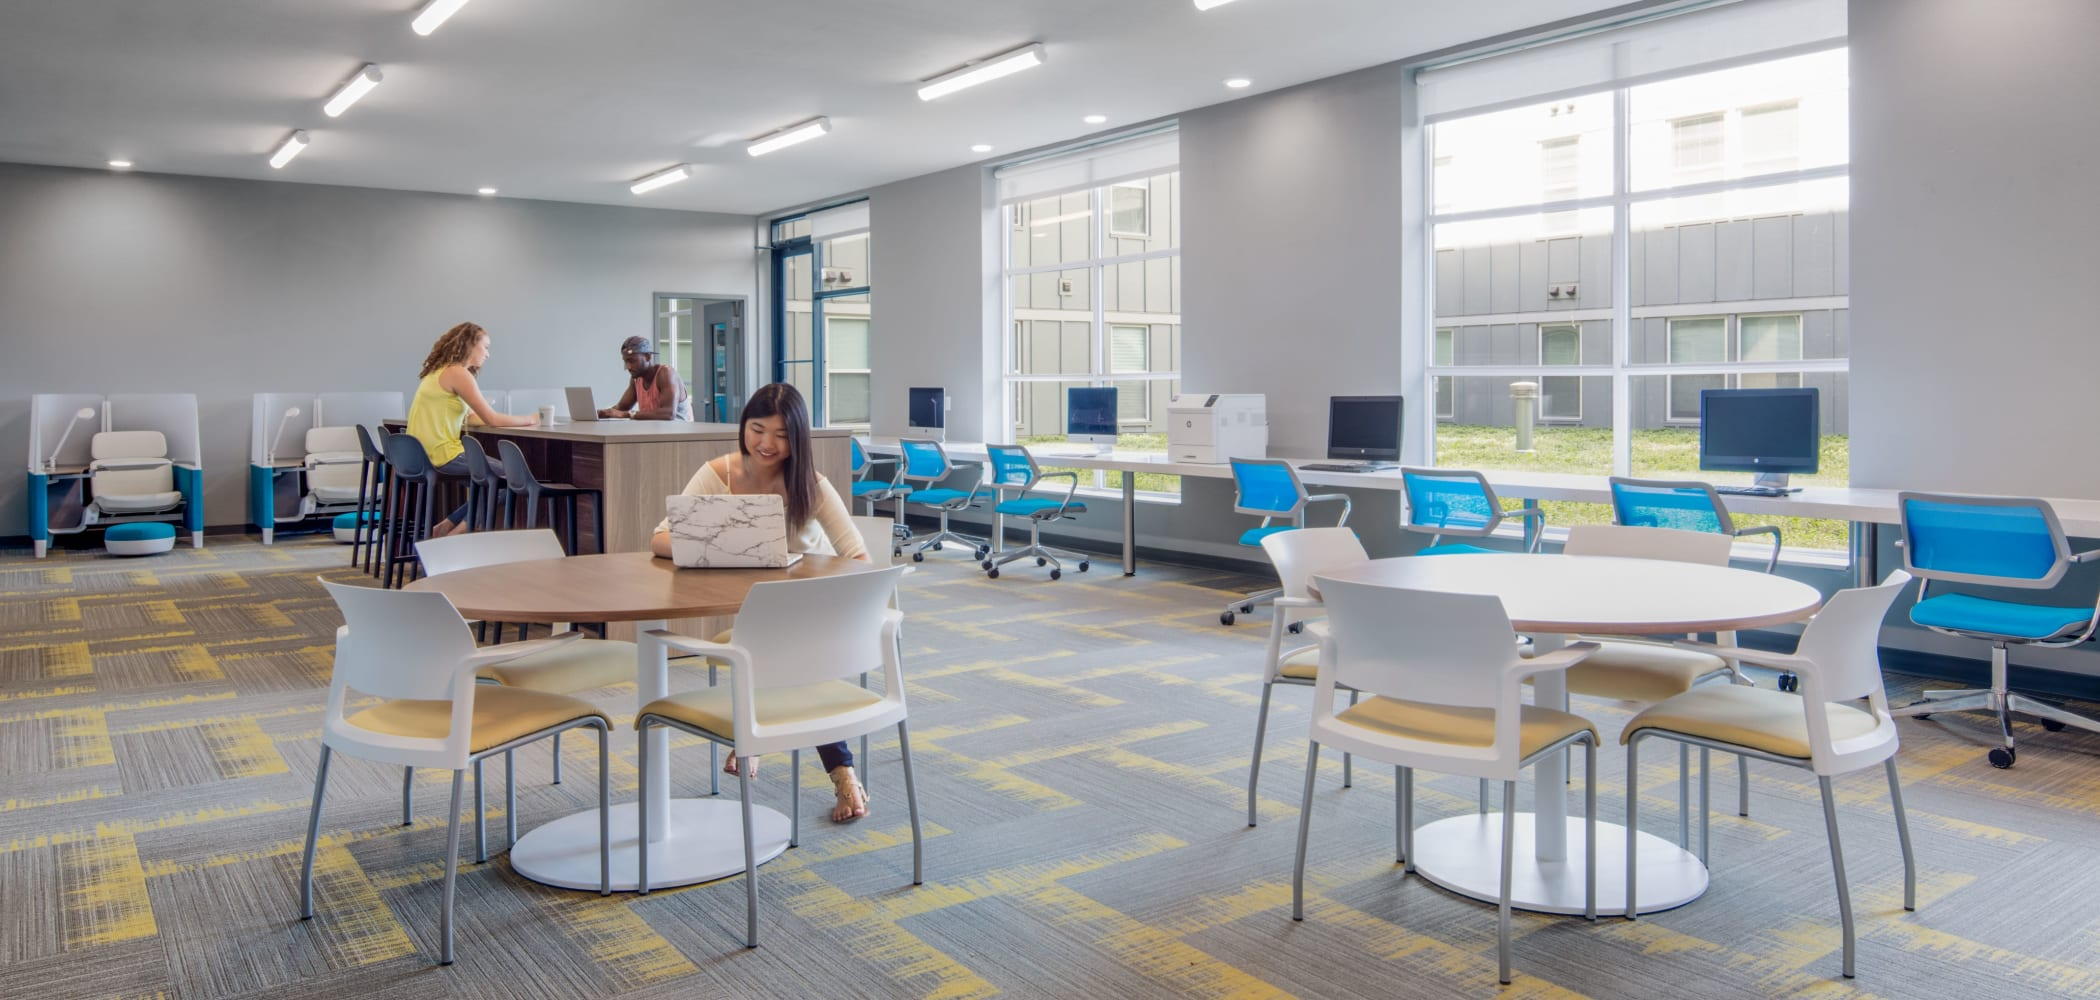 Shared study space at HERE Kansas in Lawrence, Kansas